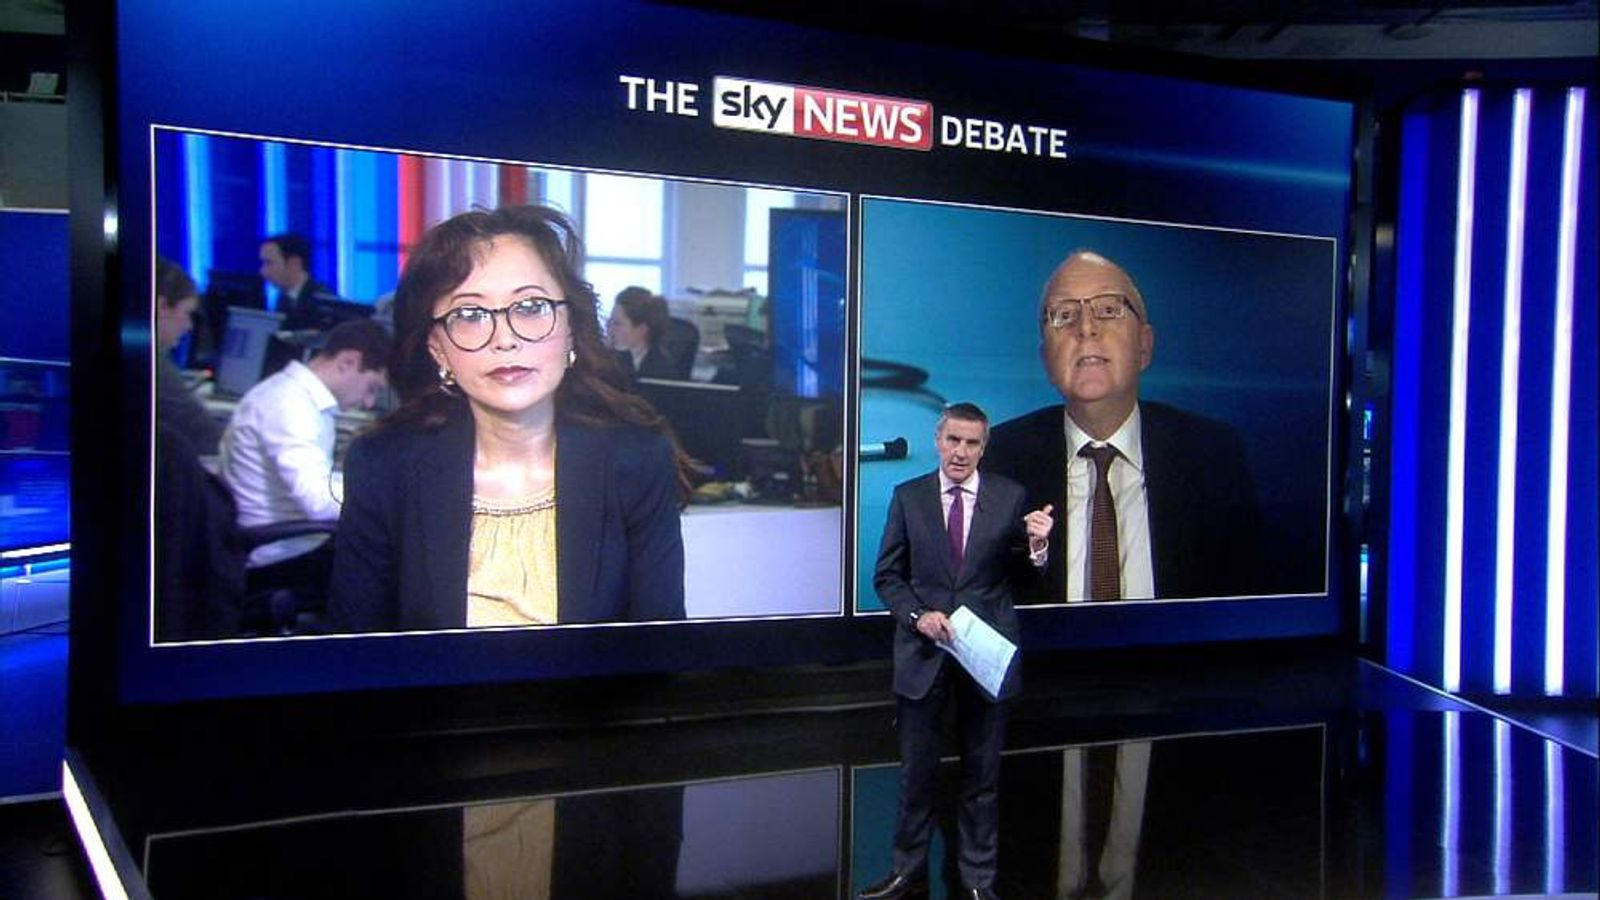 Dr Una Coales and Mike Bewick take part in the Sky News debate